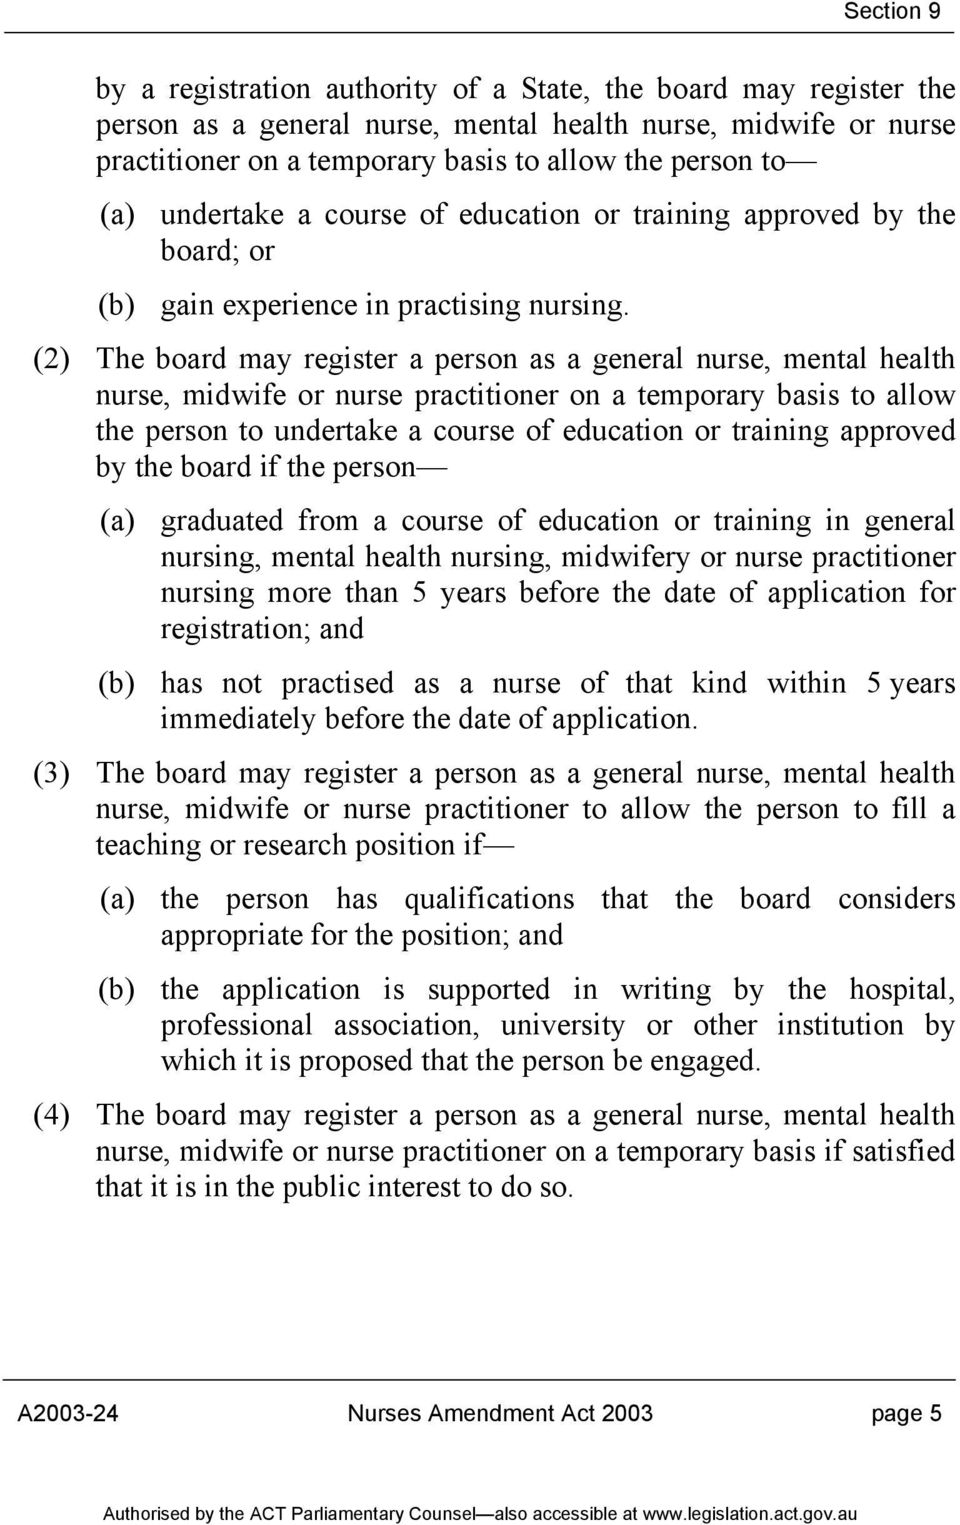 (2) The board may register a person as a general nurse, mental health nurse, midwife or nurse practitioner on a temporary basis to allow the person to undertake a course of education or training